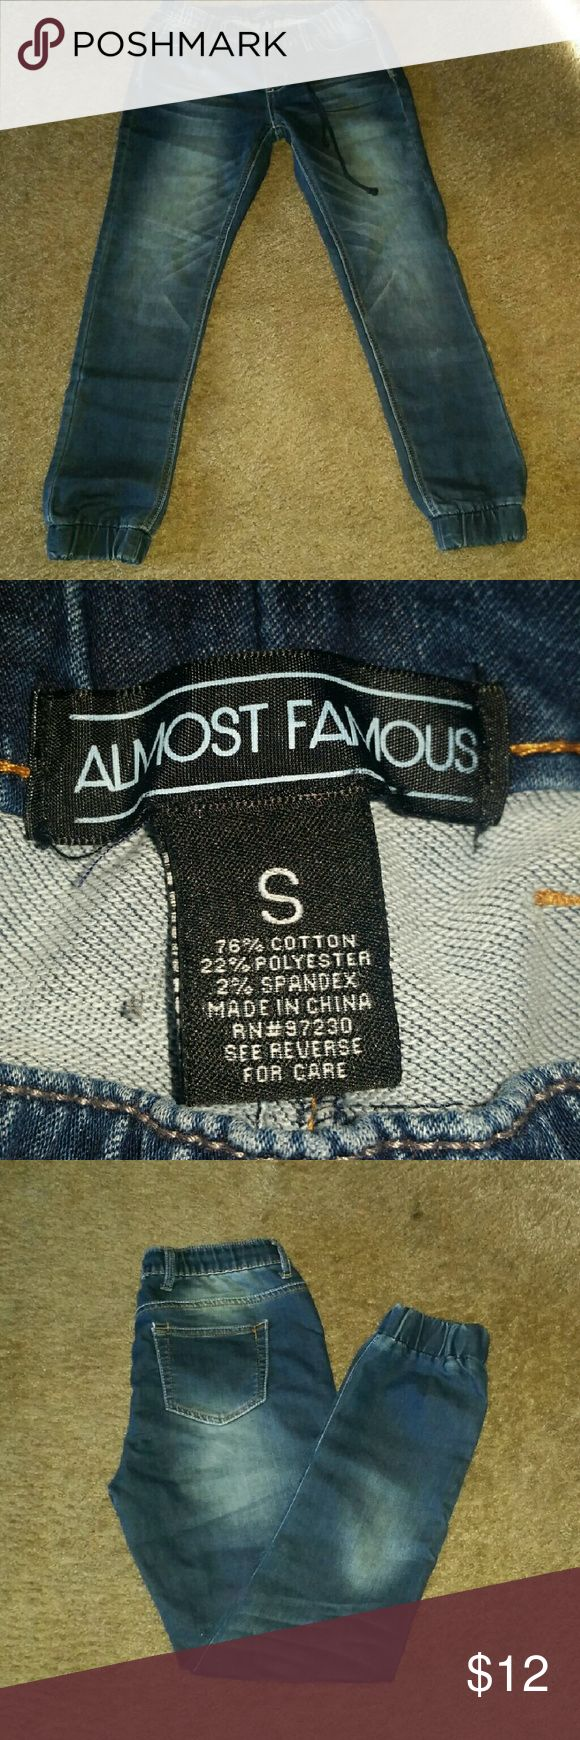 Almost Famous Jean Joggers Blue Jean Joggers. Size small. I wear a 7 or sometimes 9 and these fit. They are soft and stretchy, very comfortable! Almost Famous Jeans Ankle & Cropped